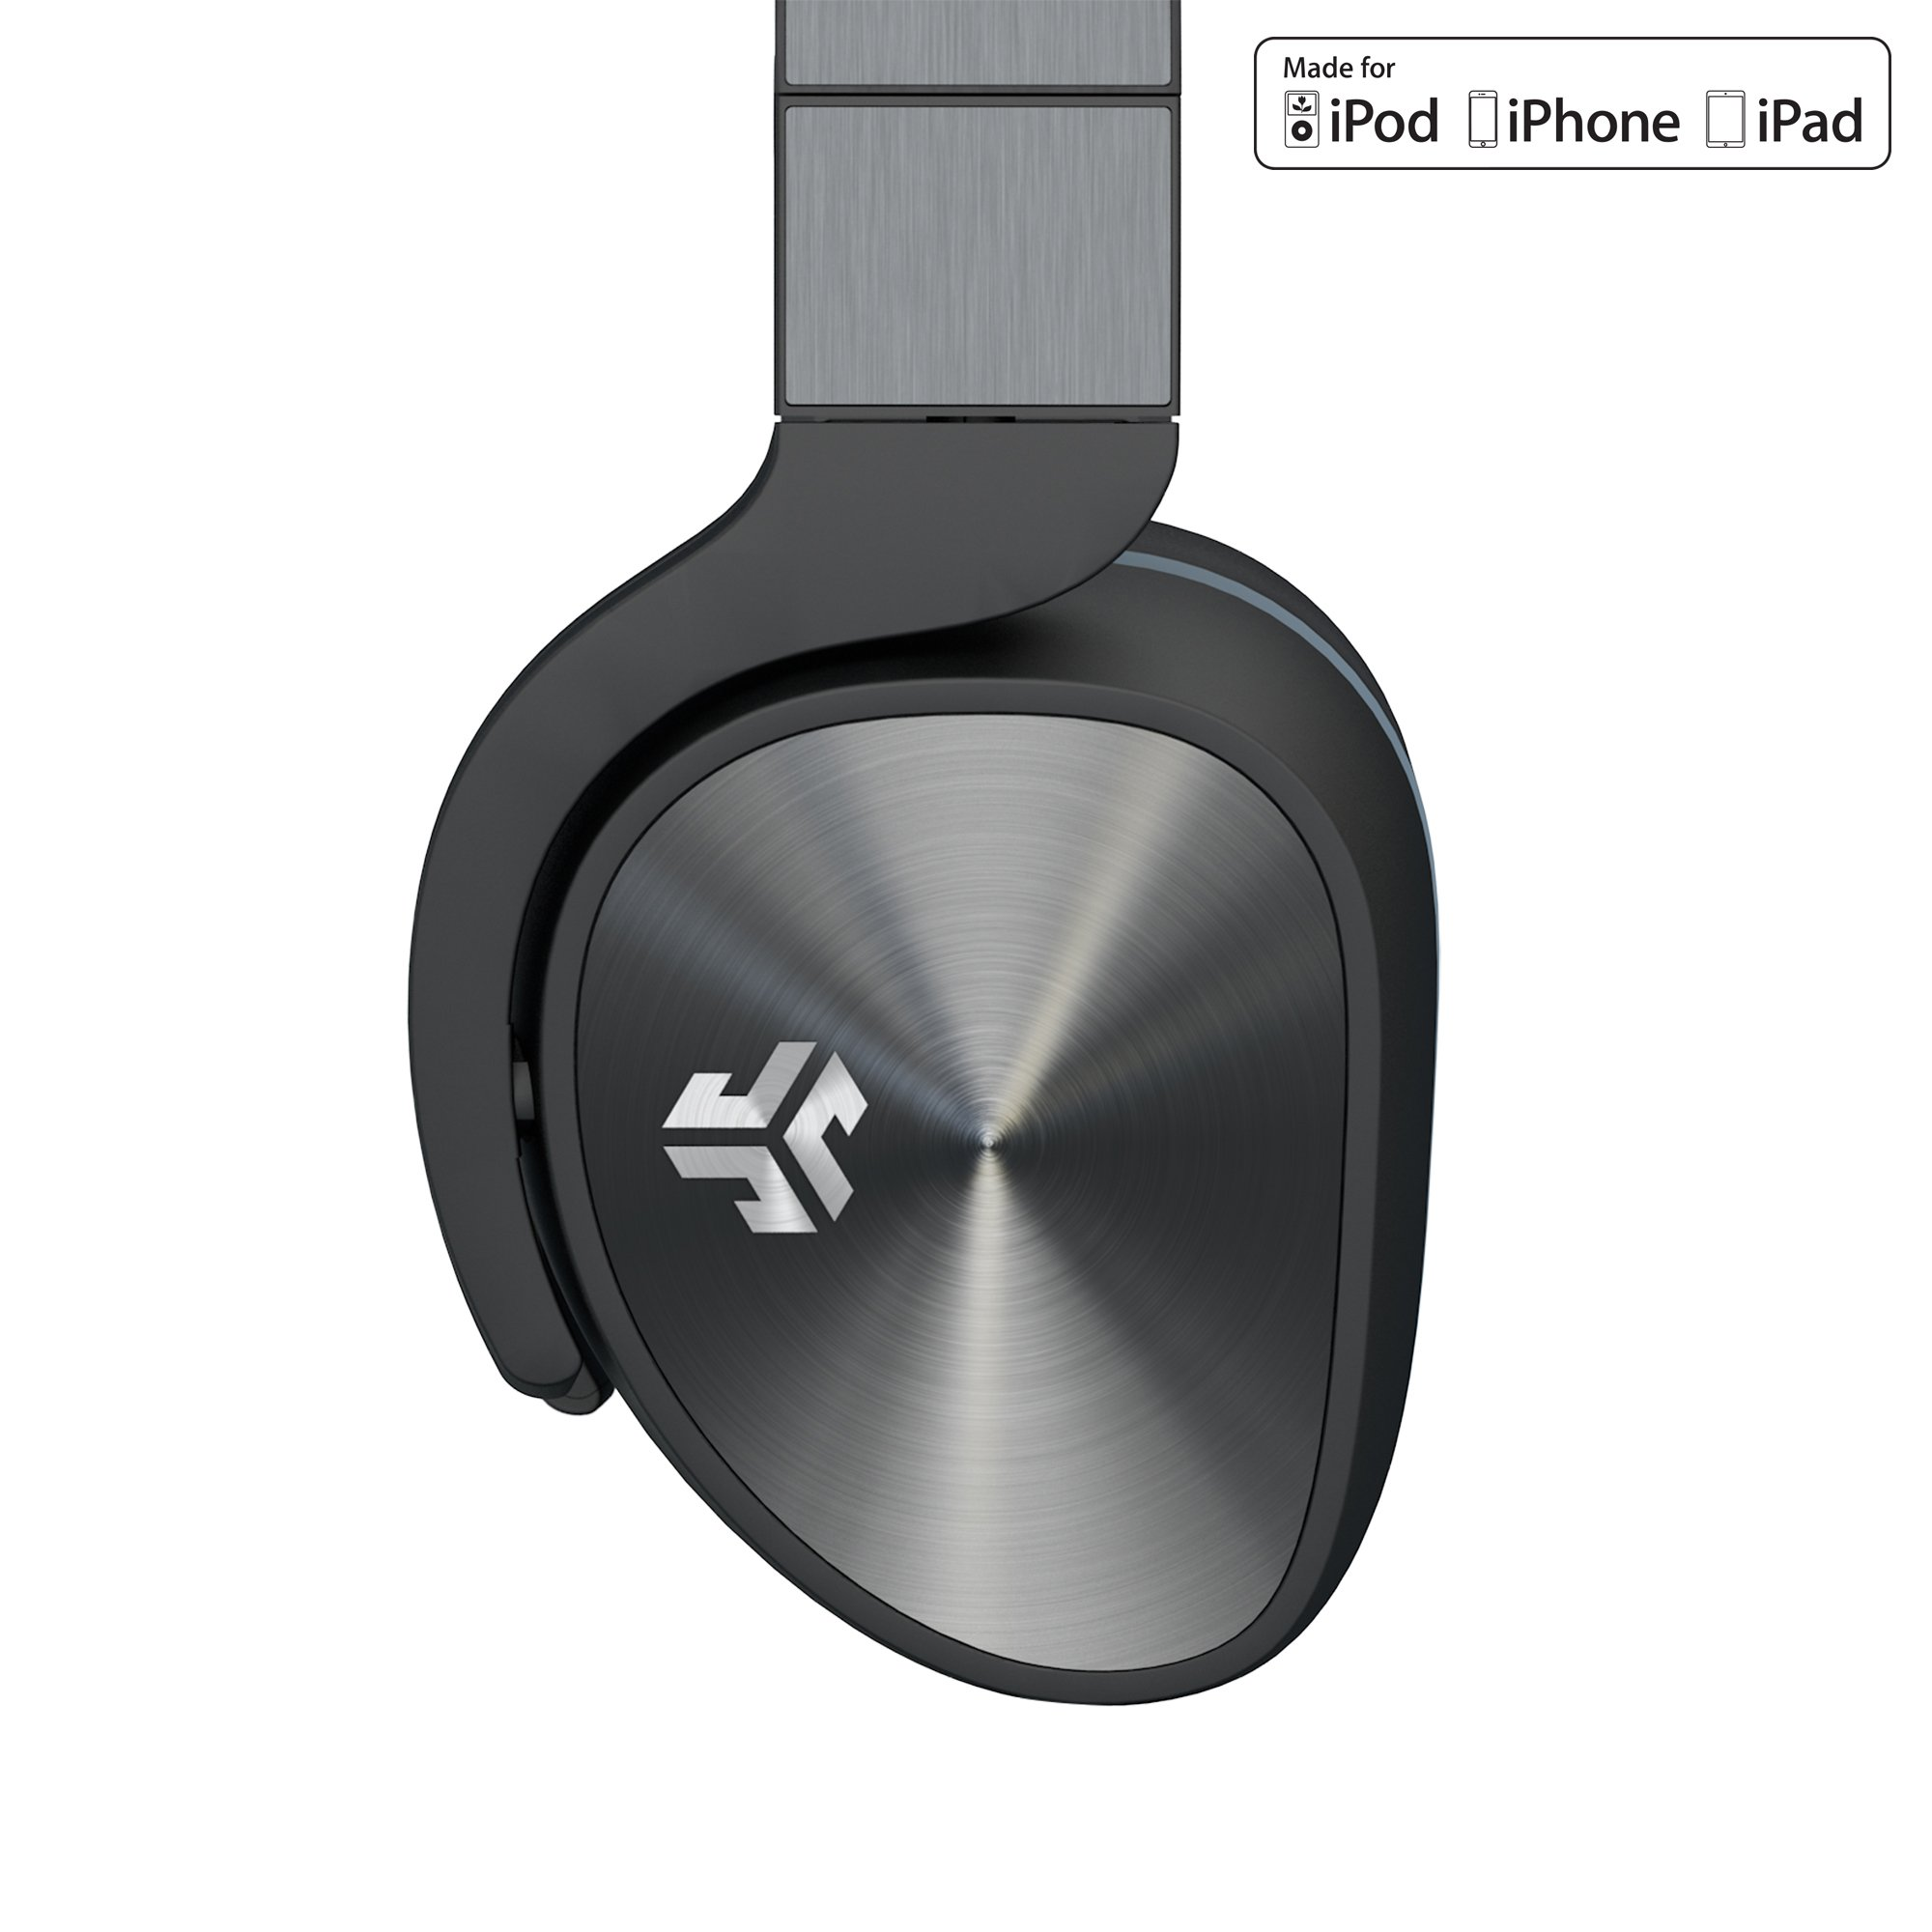 JLab Audio FLEX Studio DJ Style Headphones MADE FOR APPLE with METAL Build, GUARANTEED FOR LIFE, carrying Case and folding for easy travel.